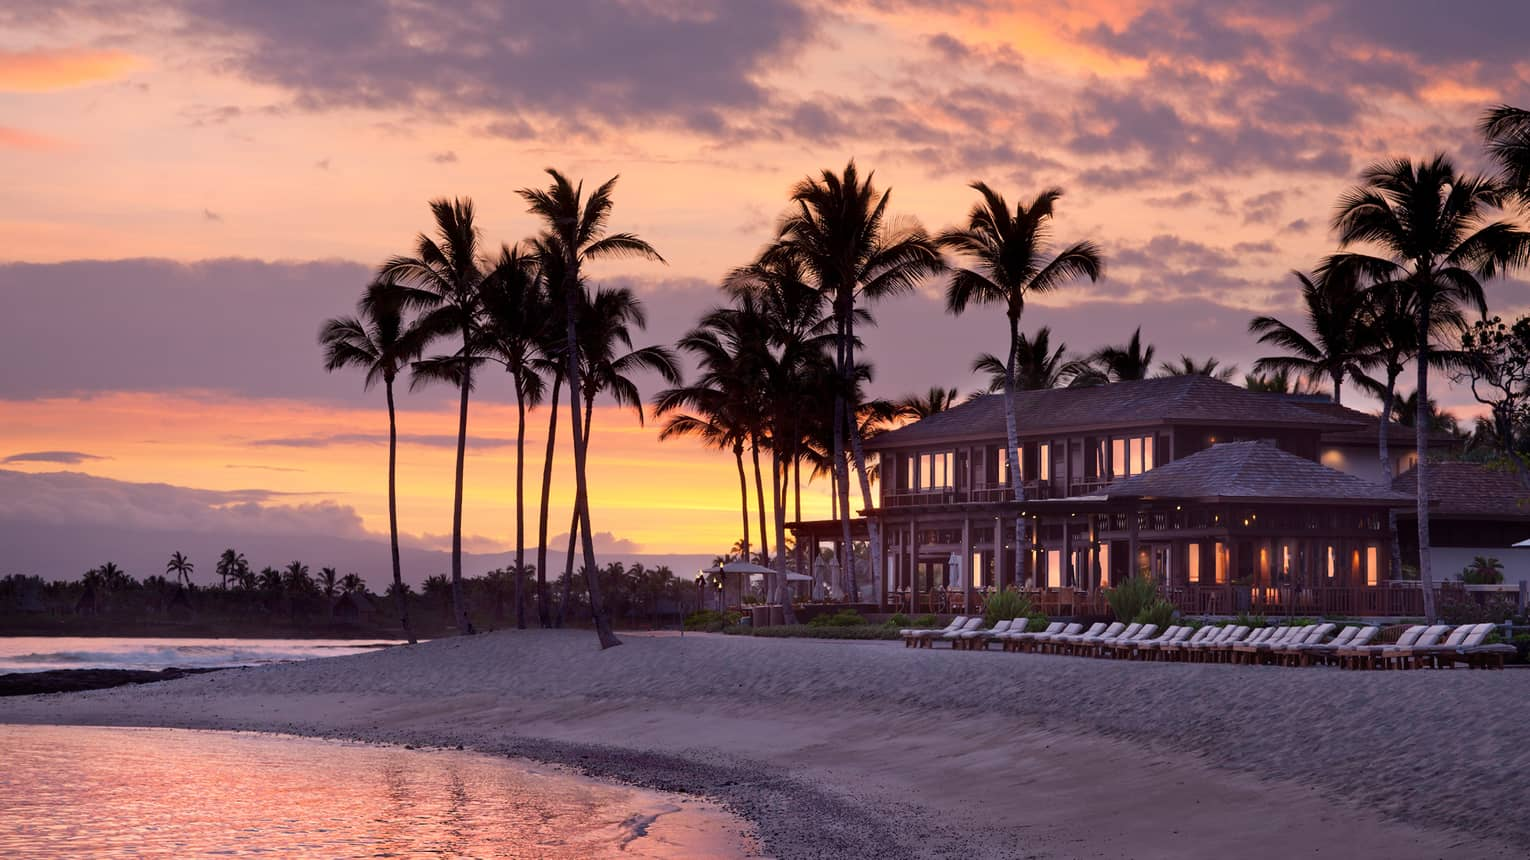 The beachside resort at sunset